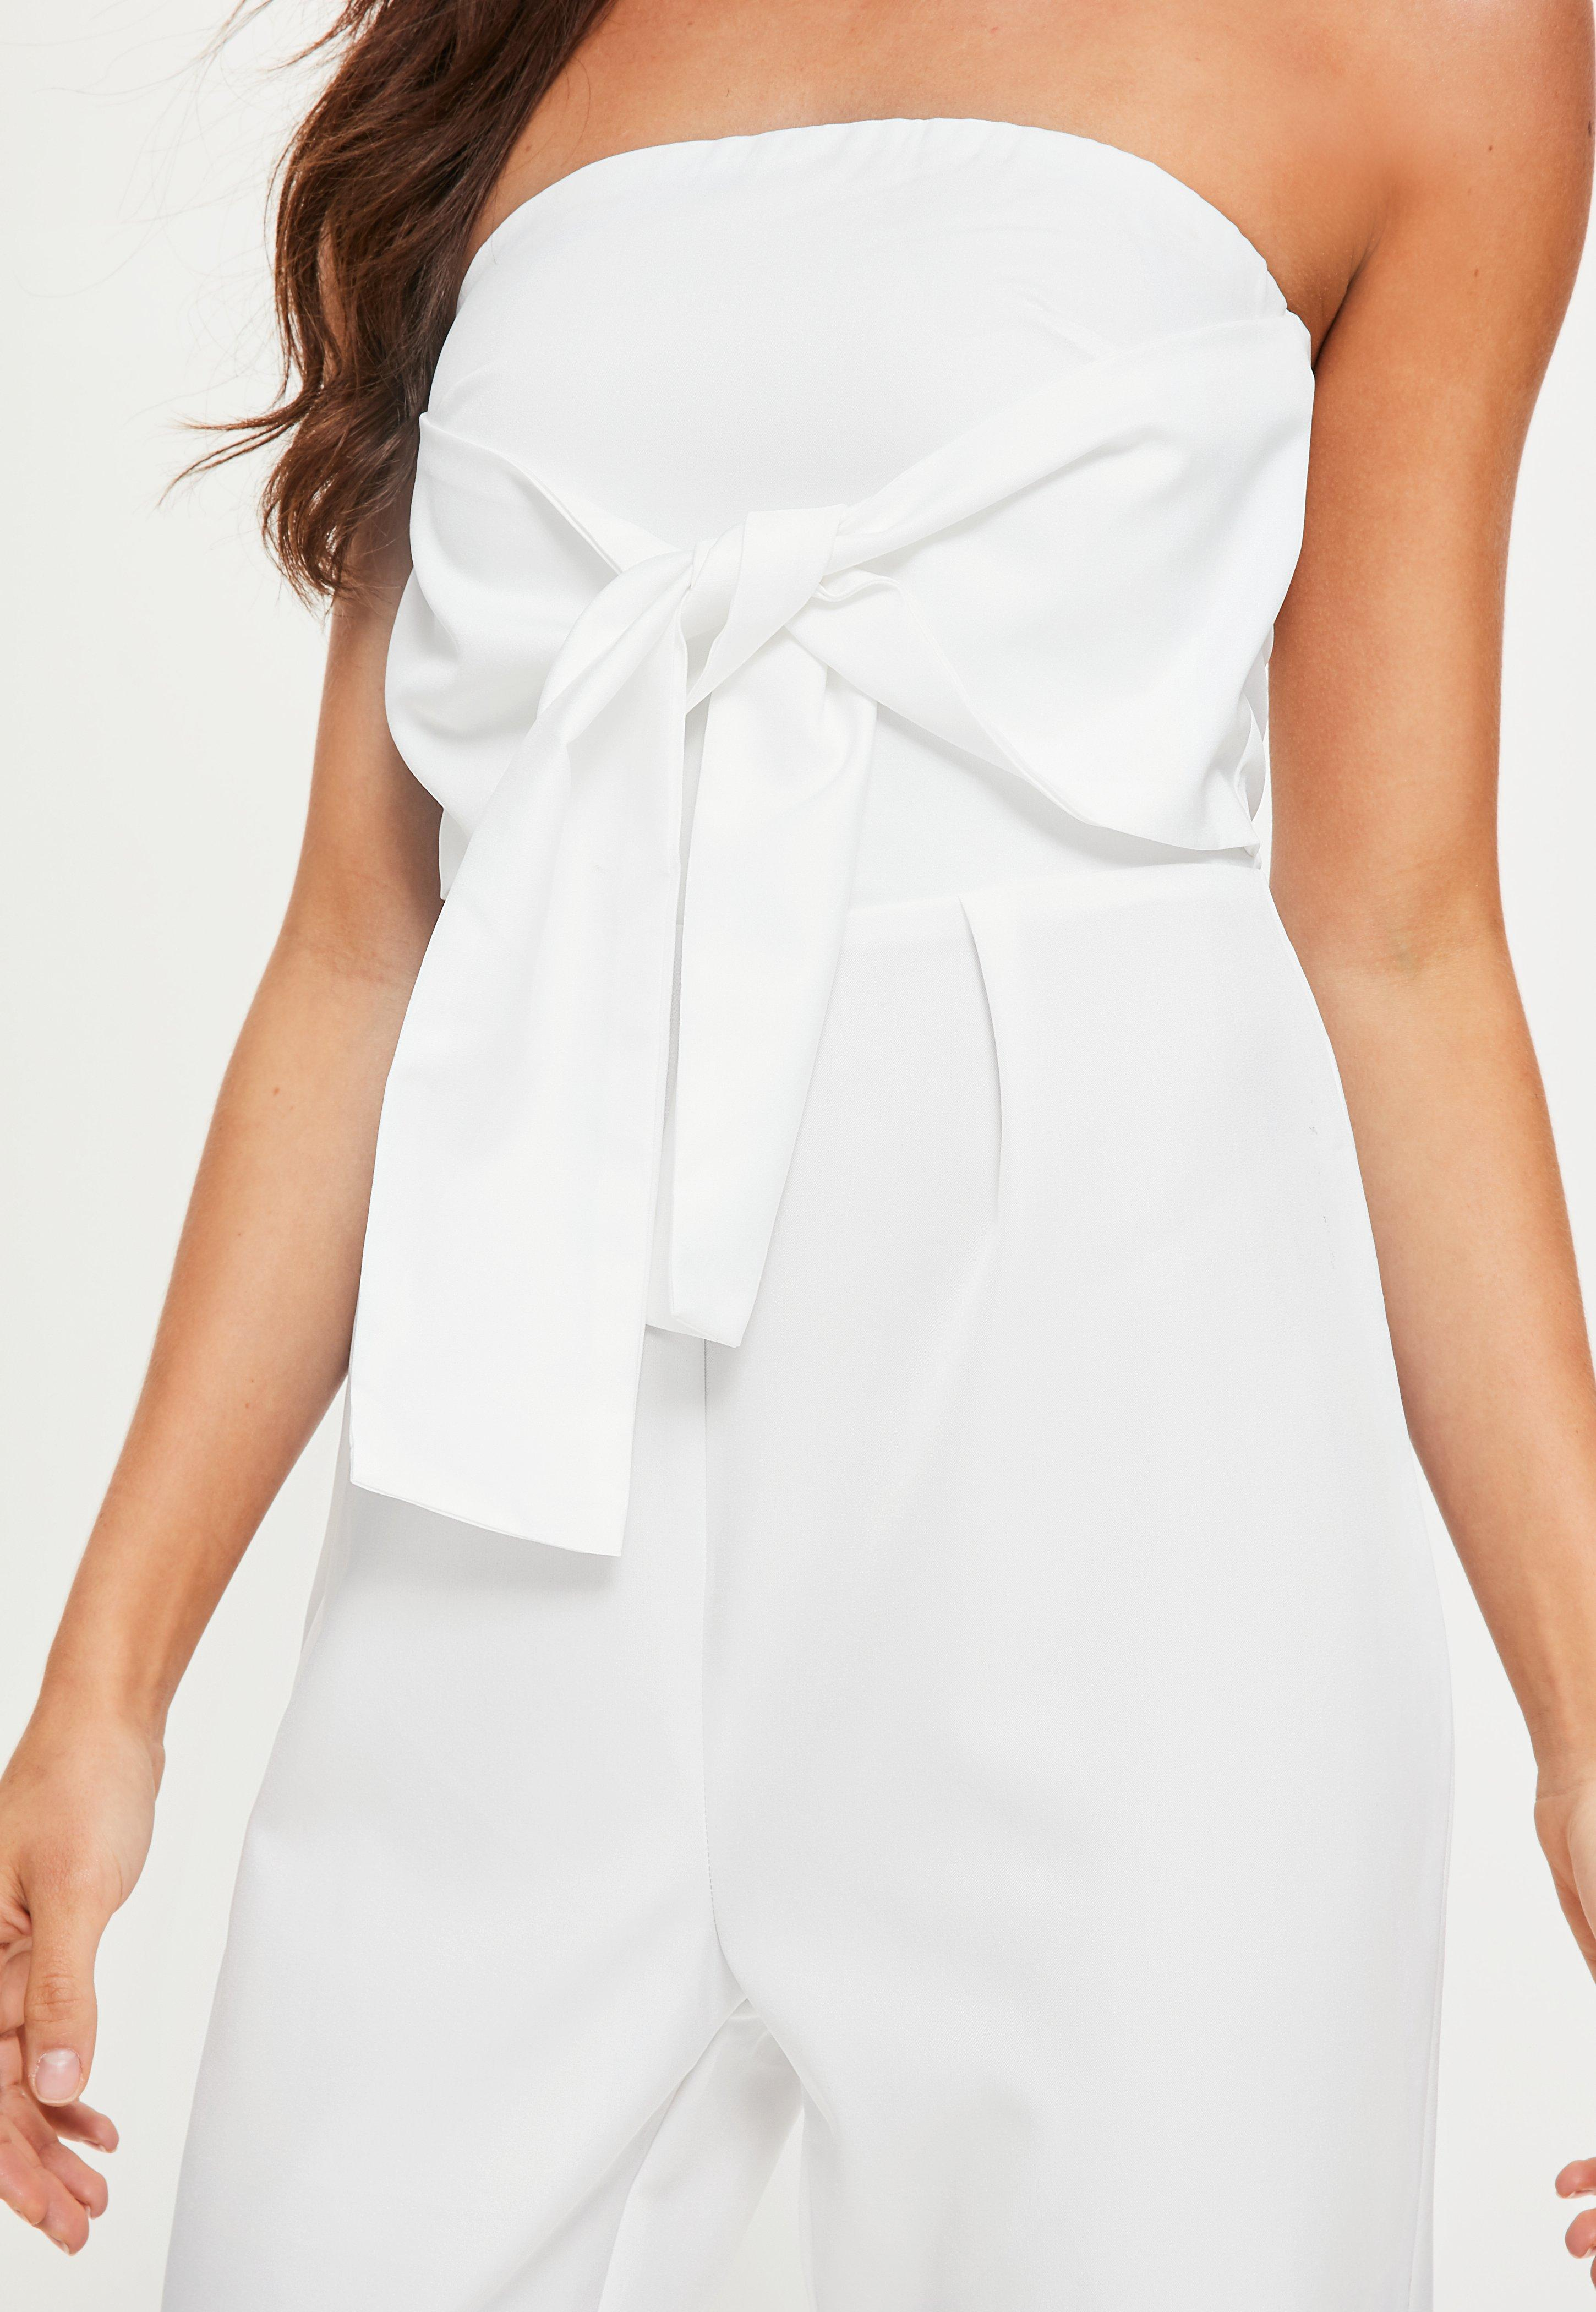 946e8848d9c Lyst - Missguided White Tie Front Bandeau Jumpsuit in White